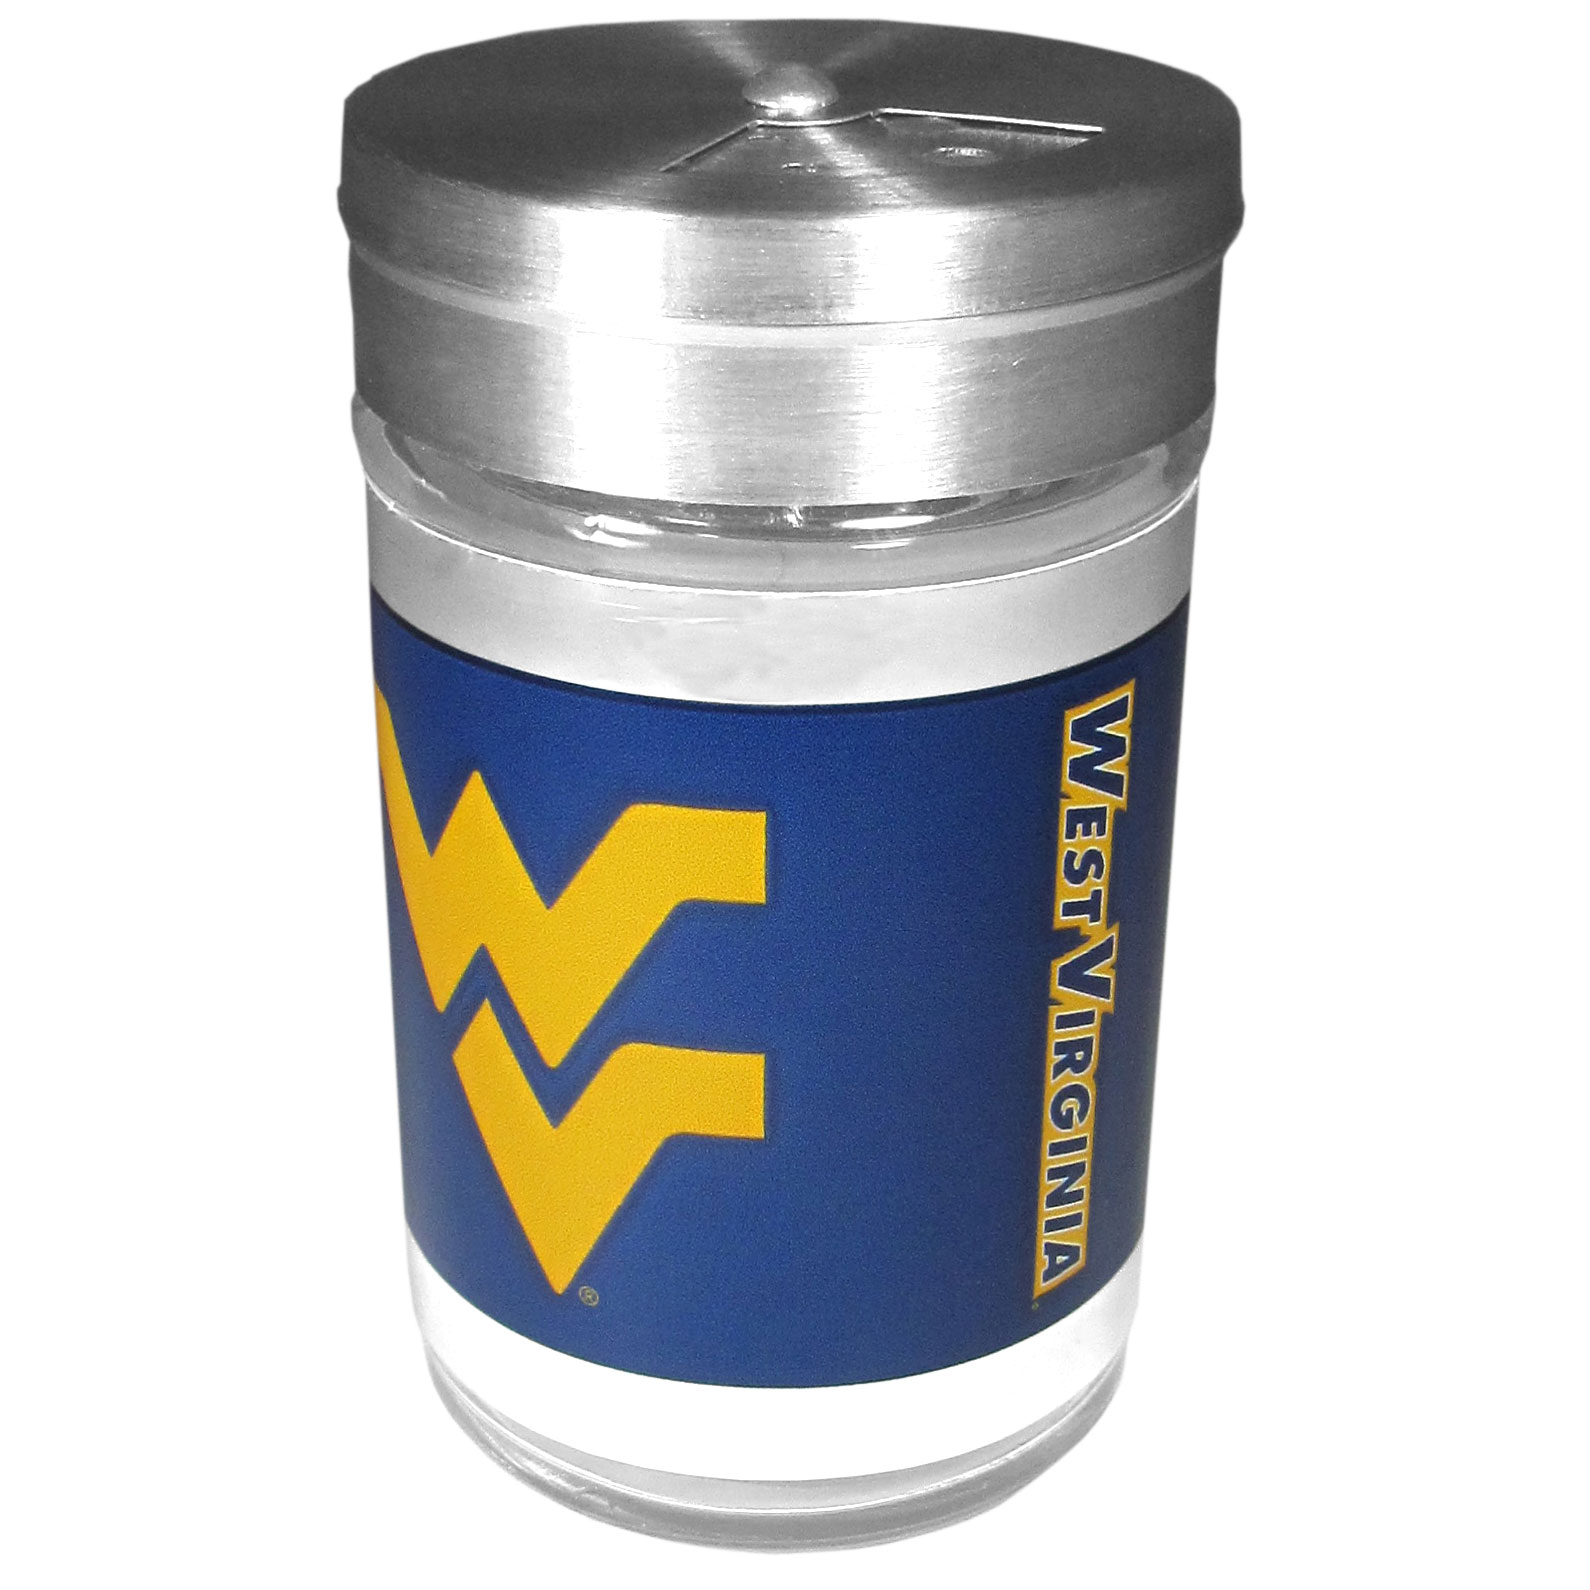 W. Virginia Mountaineers Tailgater Season Shakers - Spice it up with our W. Virginia Mountaineers tailgater season shakers! This compact shaker is 2 inch tall with a twist top that closes off the holes at the top making it perfect for travel preventing those messy spills. The shaker has wide holes perfect for keeping your pepper seeds or cheese toppings. The bright team graphics will make you the envy of the other fans while you are grilling up your tailgating goodies.